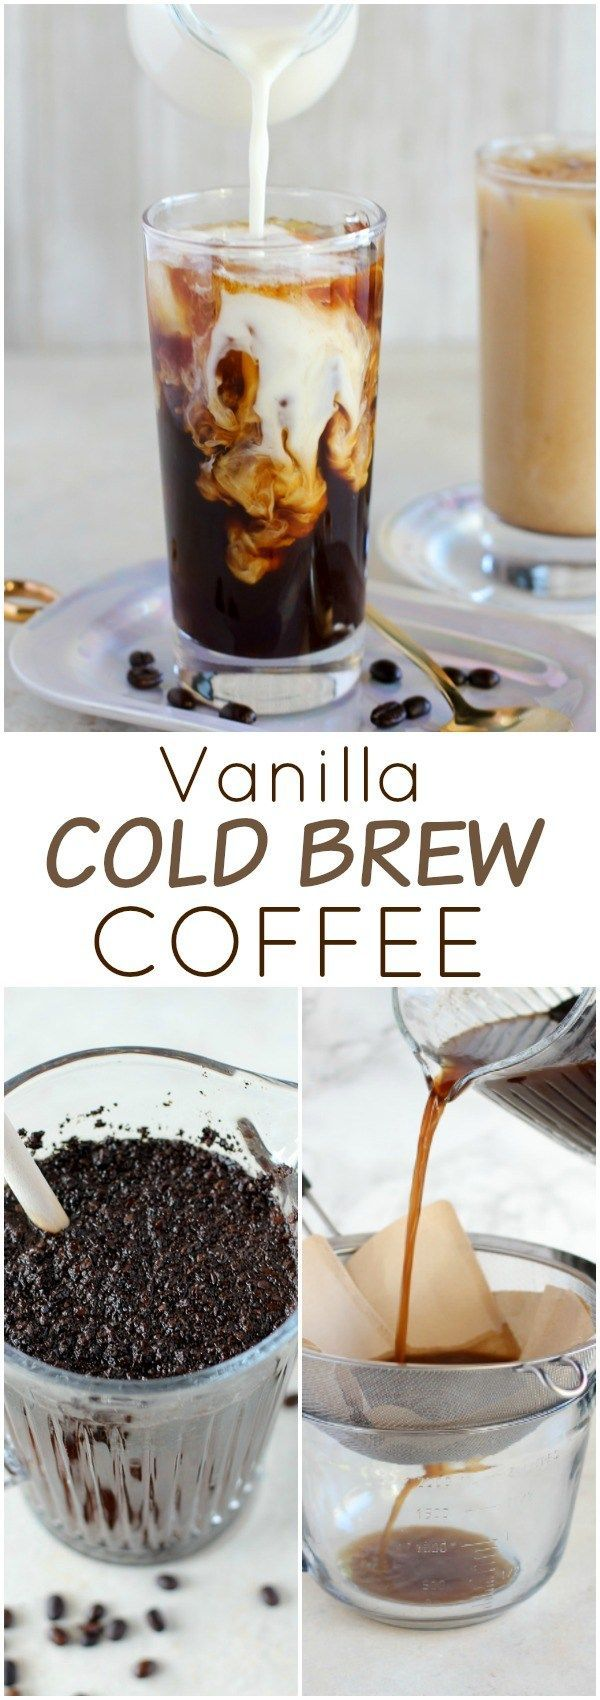 Vanilla Cold Brew Coffee - Easy homemade cold brew coffee infused with vanilla bean and served with vanilla creamer. #ad #SilkandSimplyPureCreamers @walmart